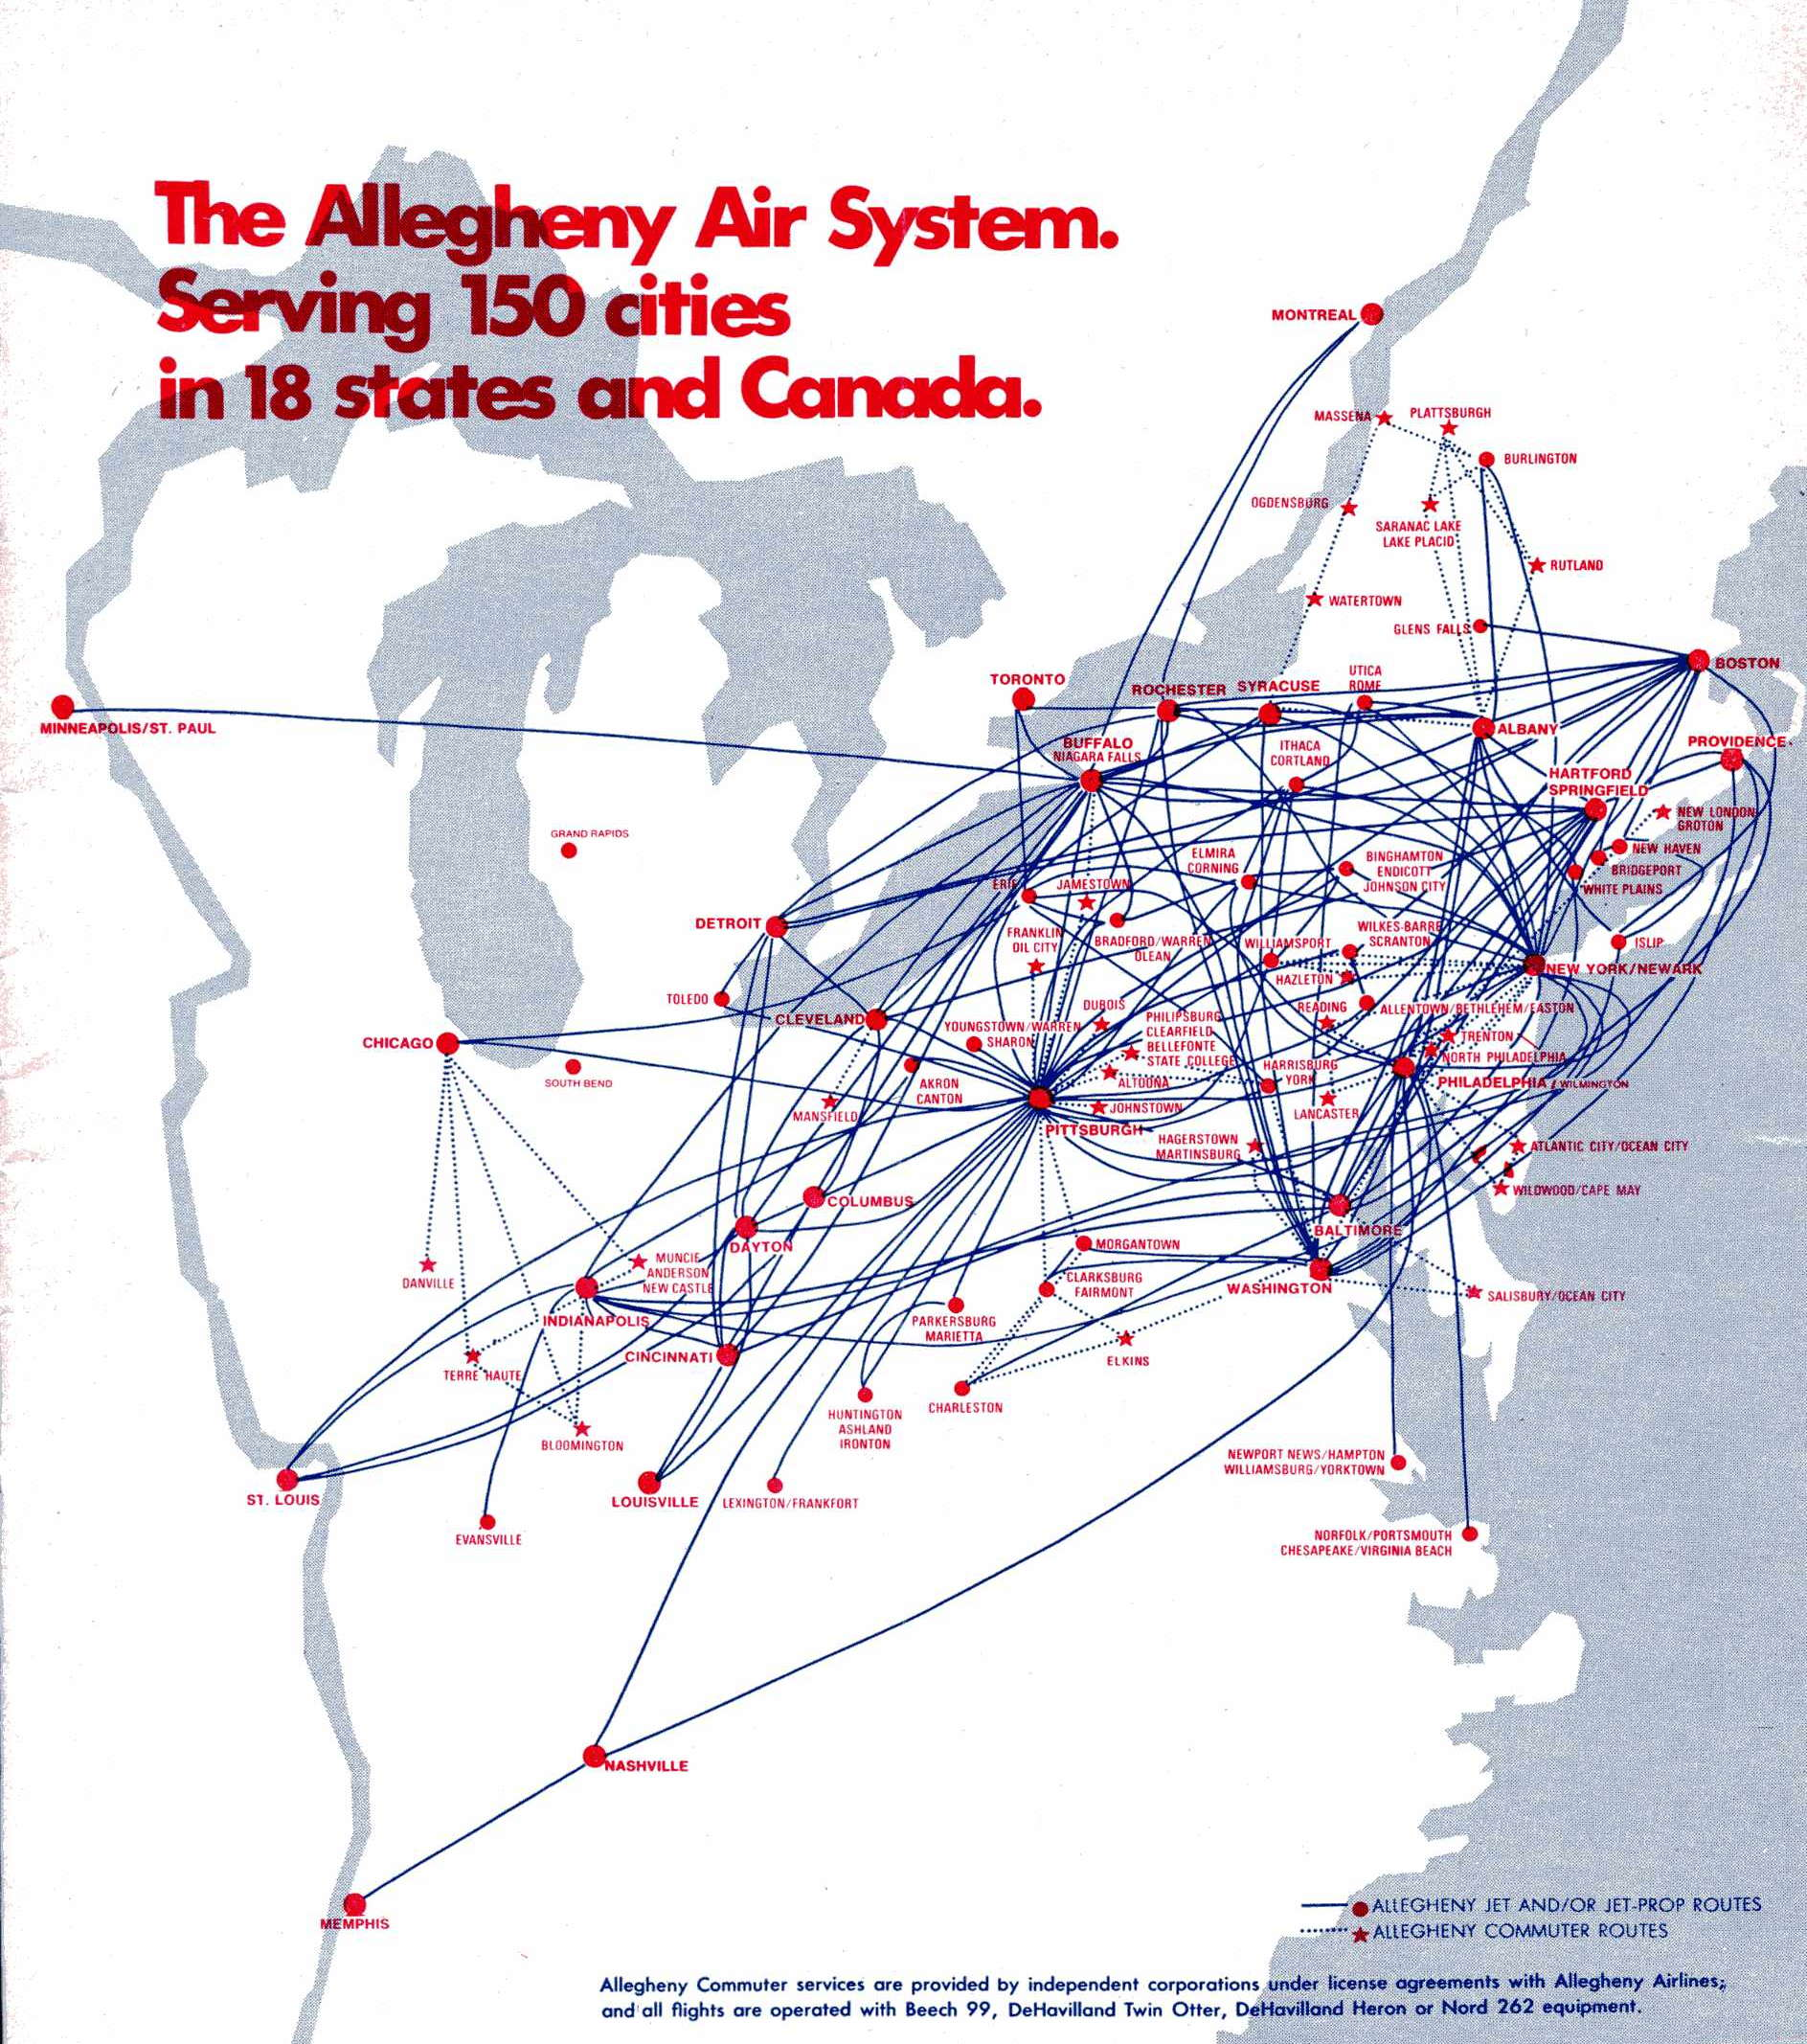 File:Allegheny Air System Route Maps 1975 01.jpg